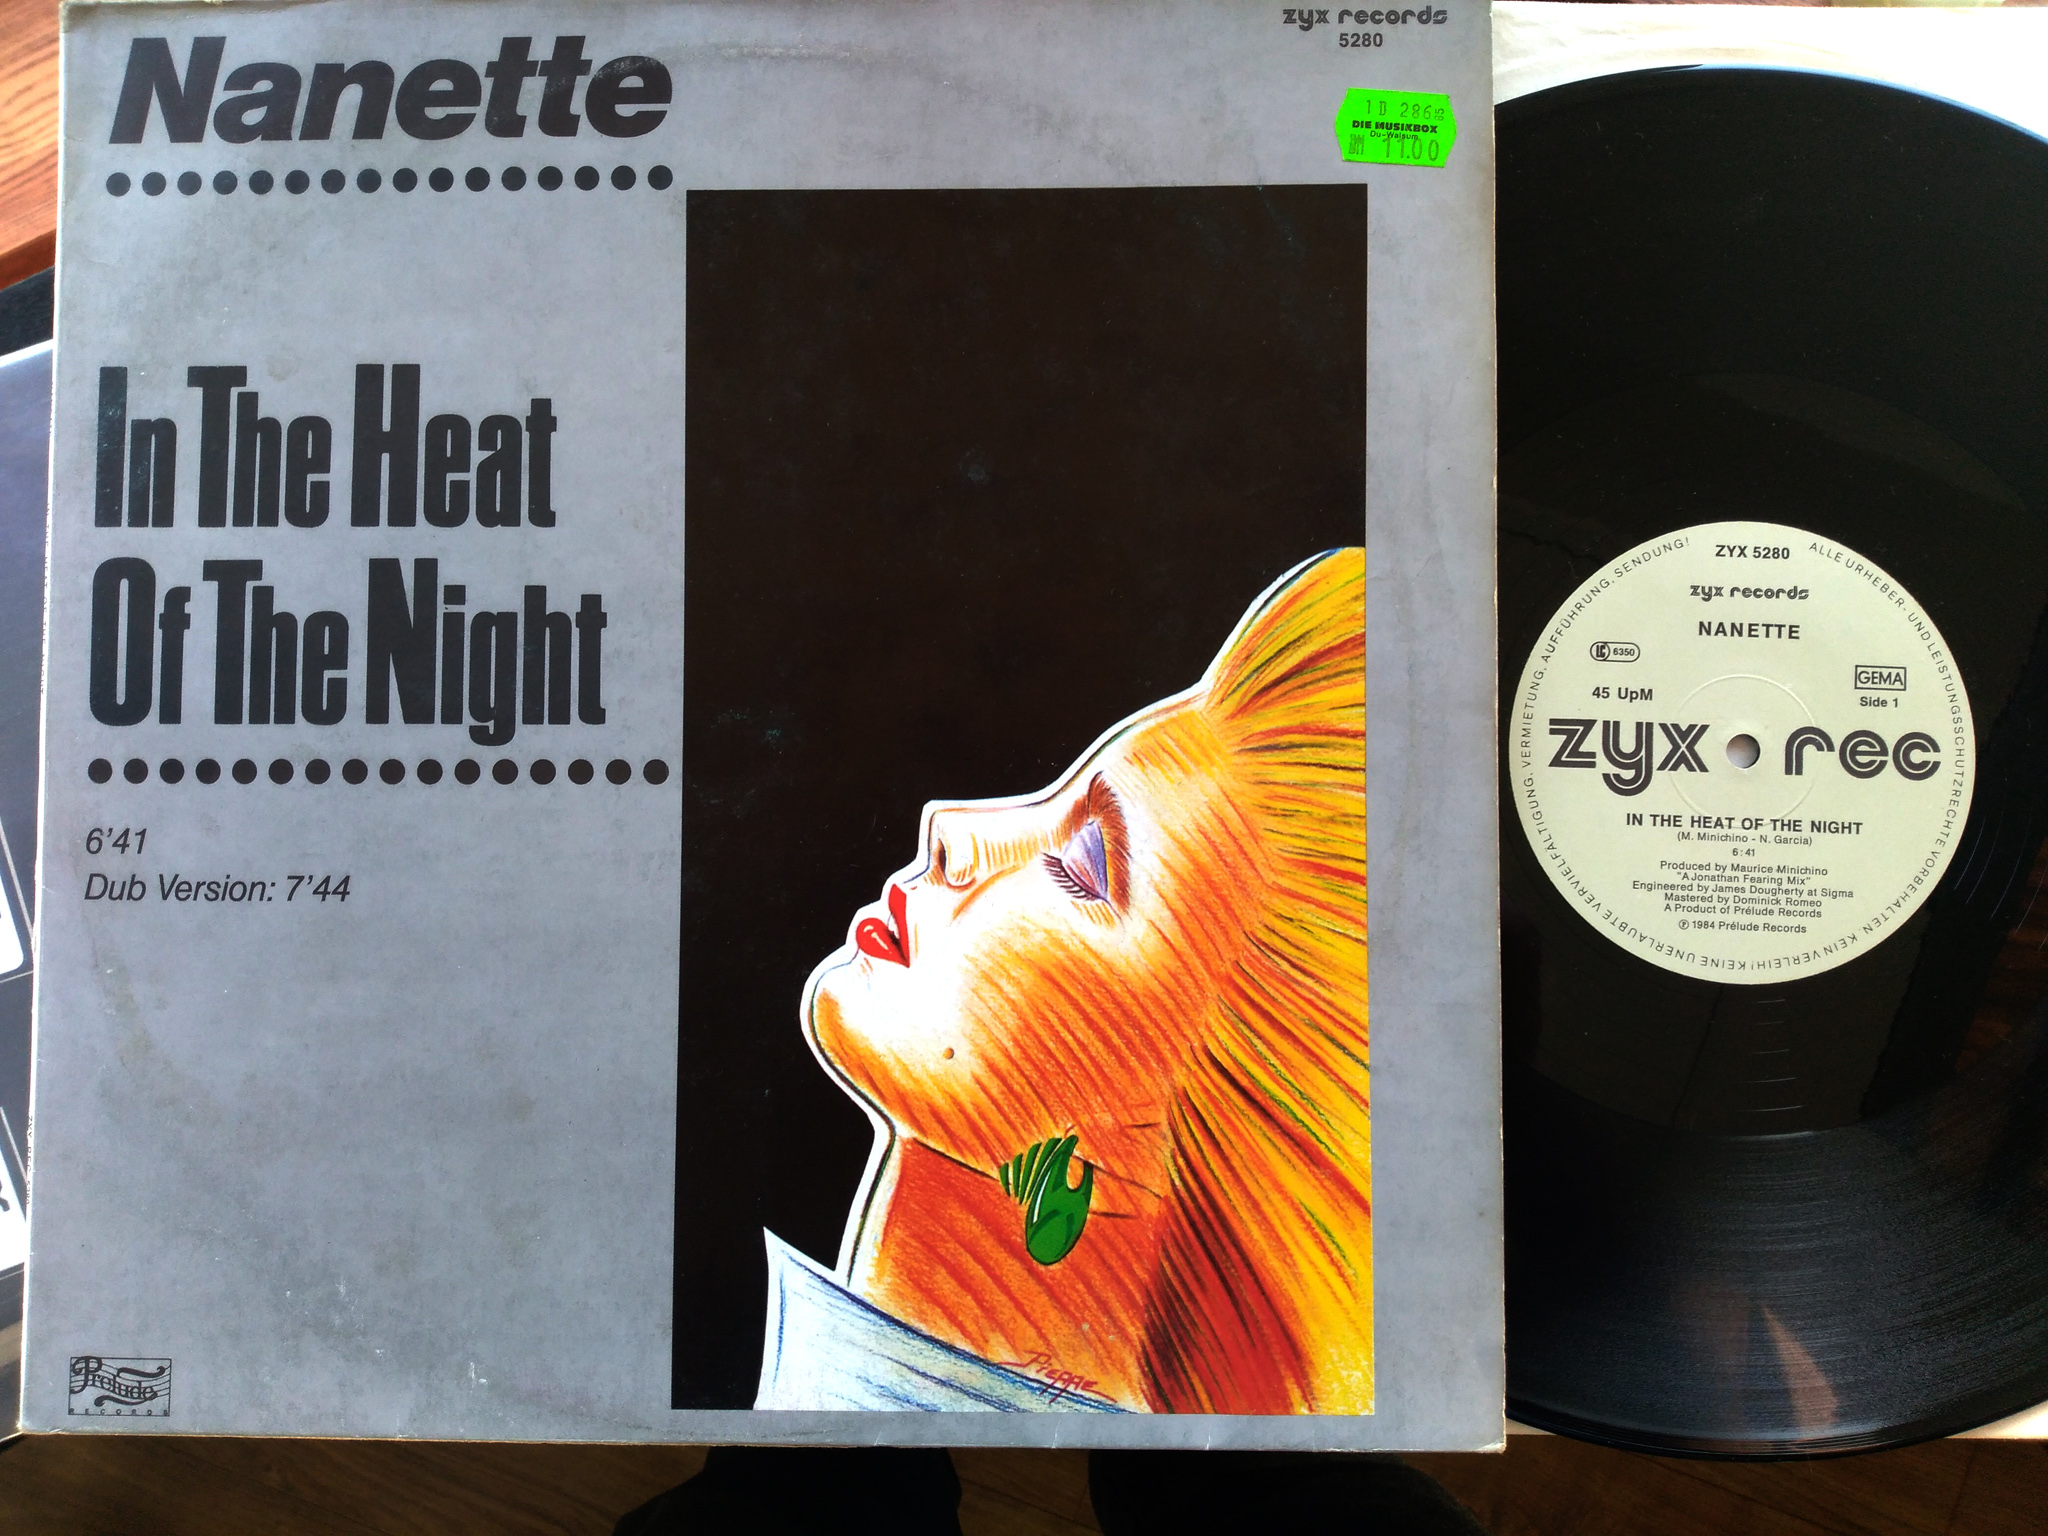 Nanette - In The Heat Of The Night